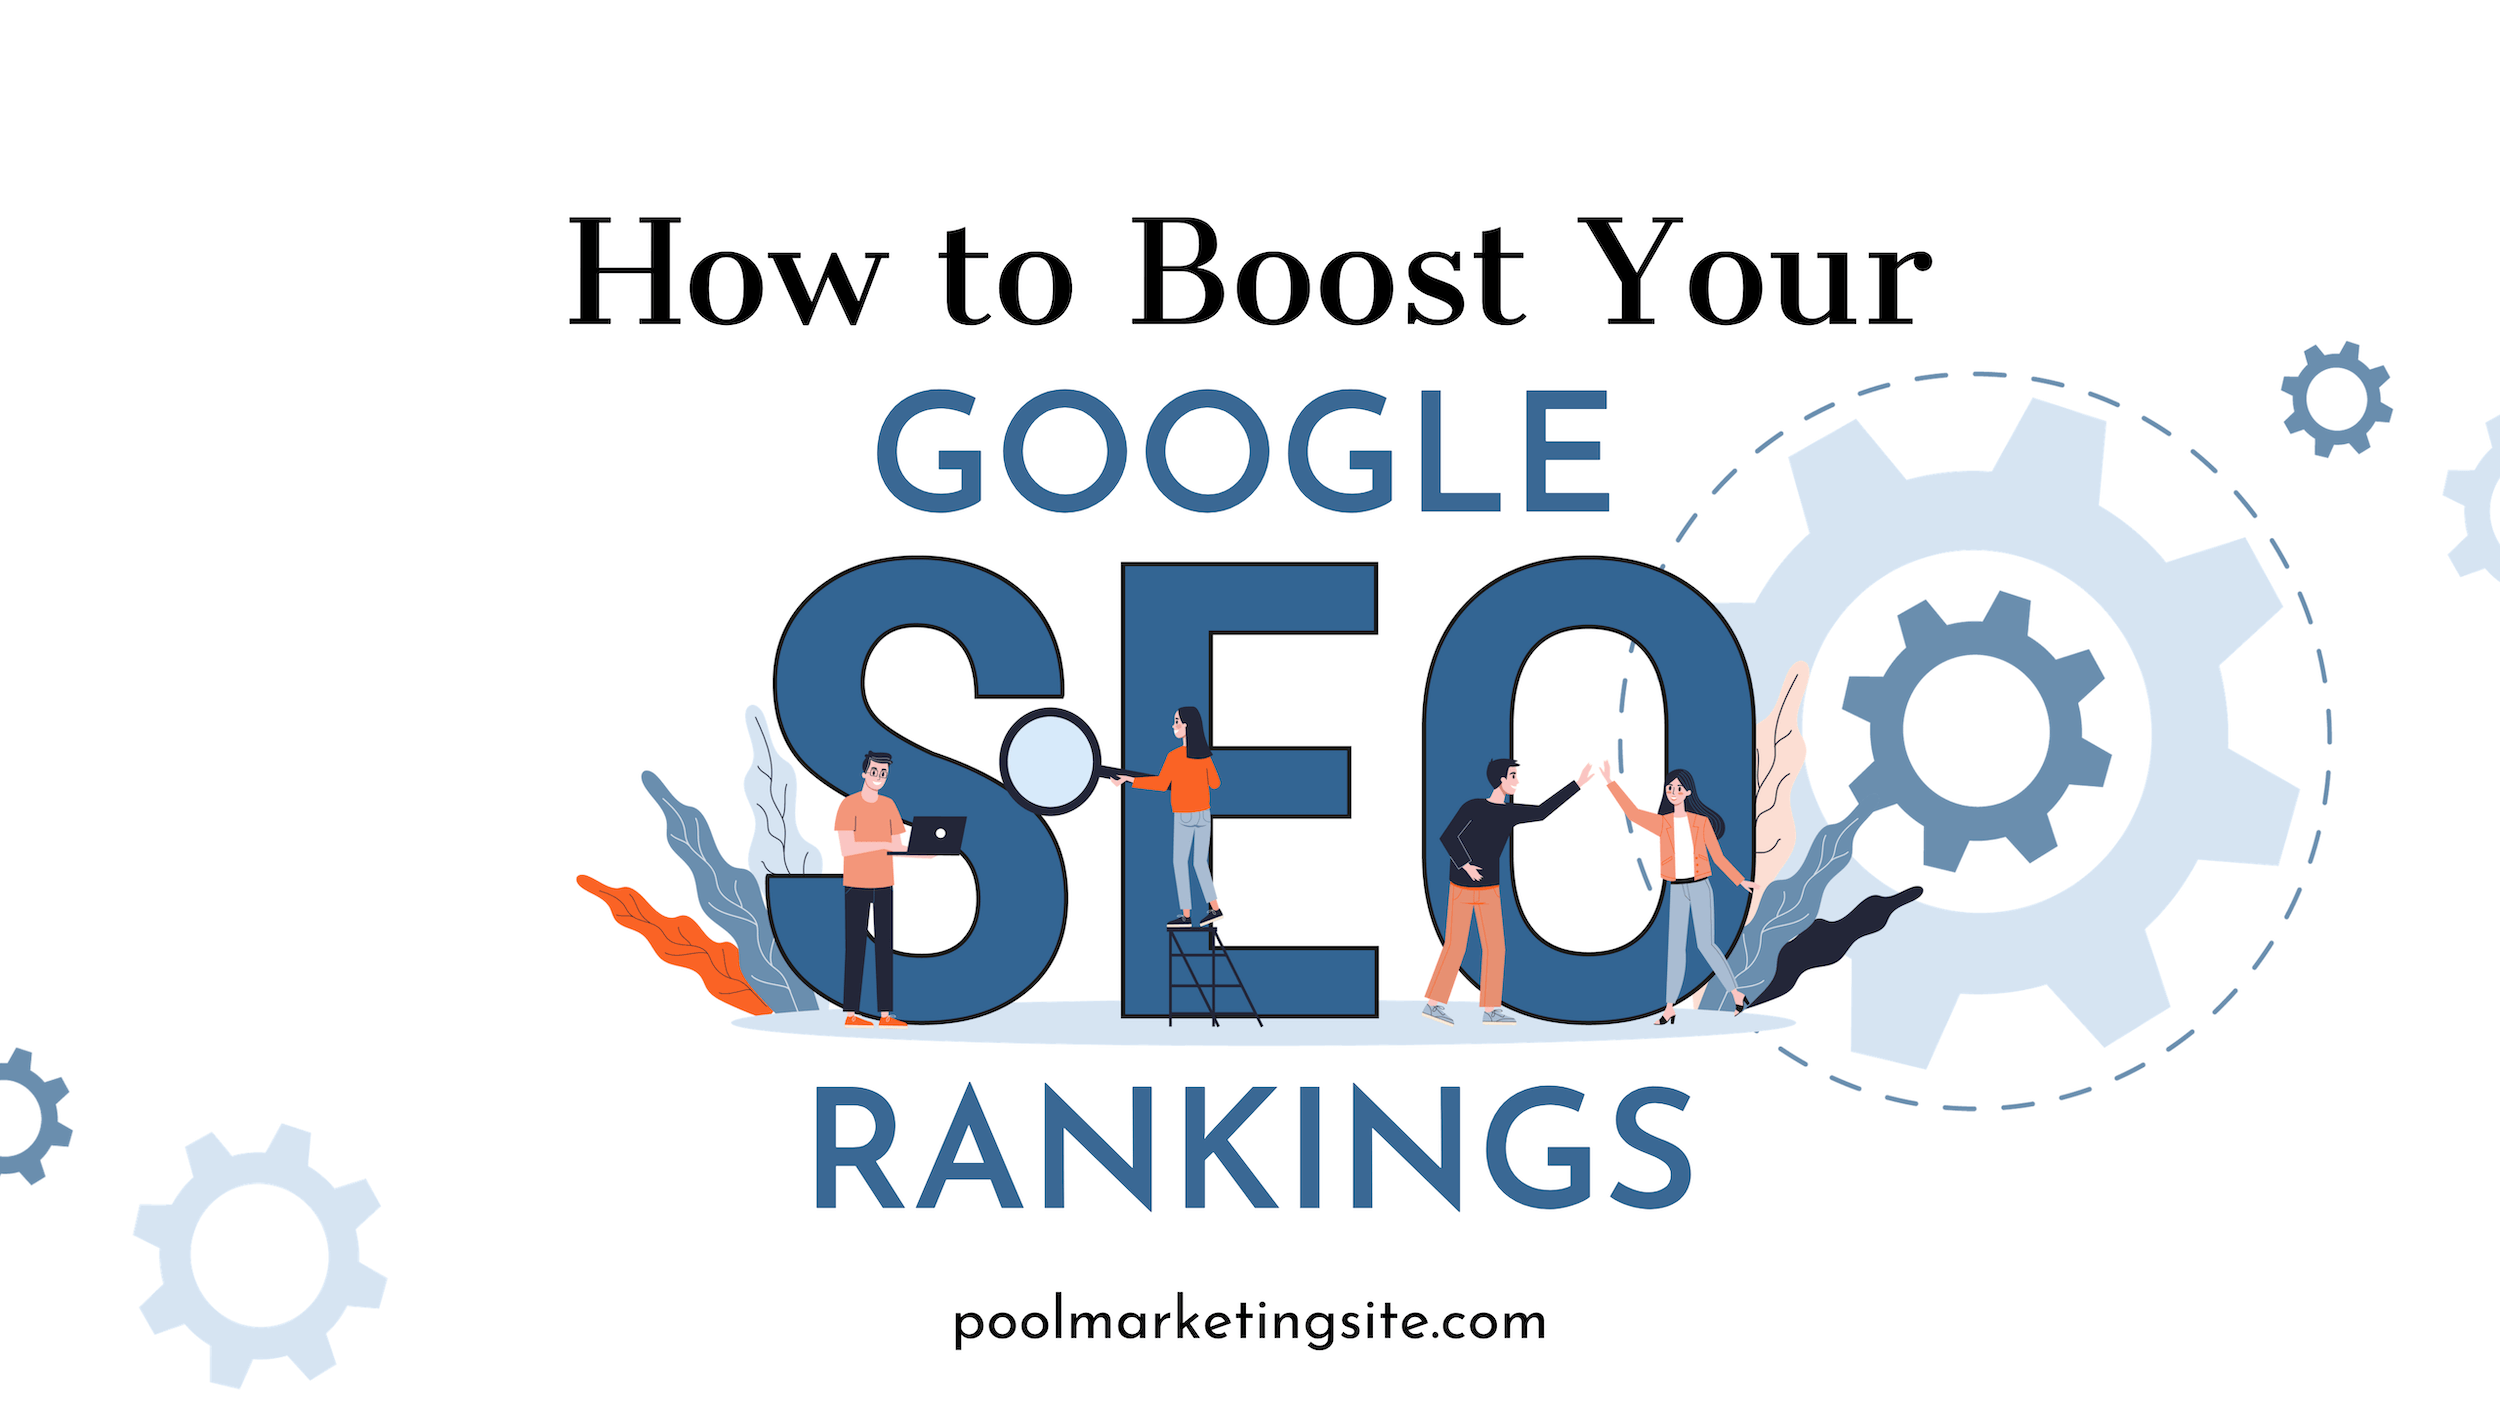 How to Boost Your Google SEO Rankings